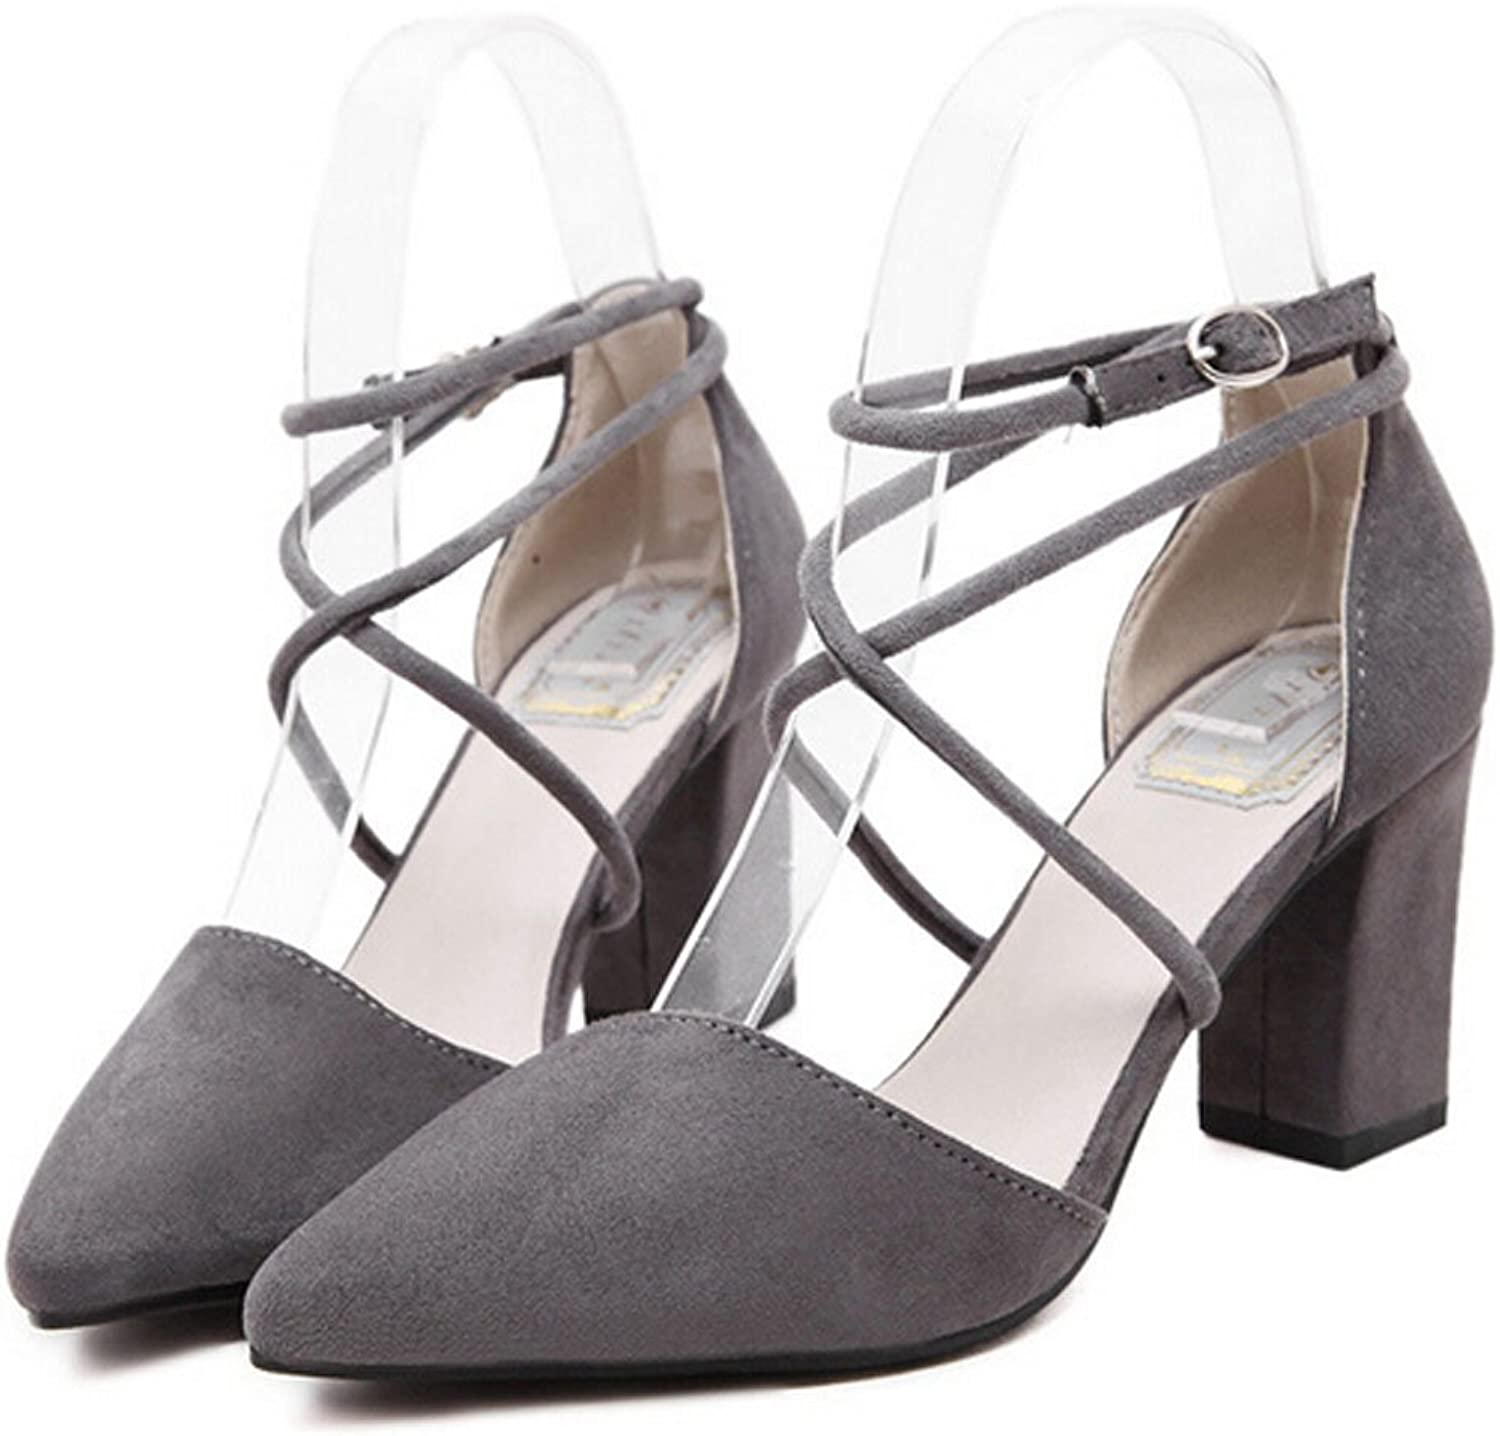 San hojas Suede Ankle Strap Pumps Pointed Toe Soft Party Heels Black